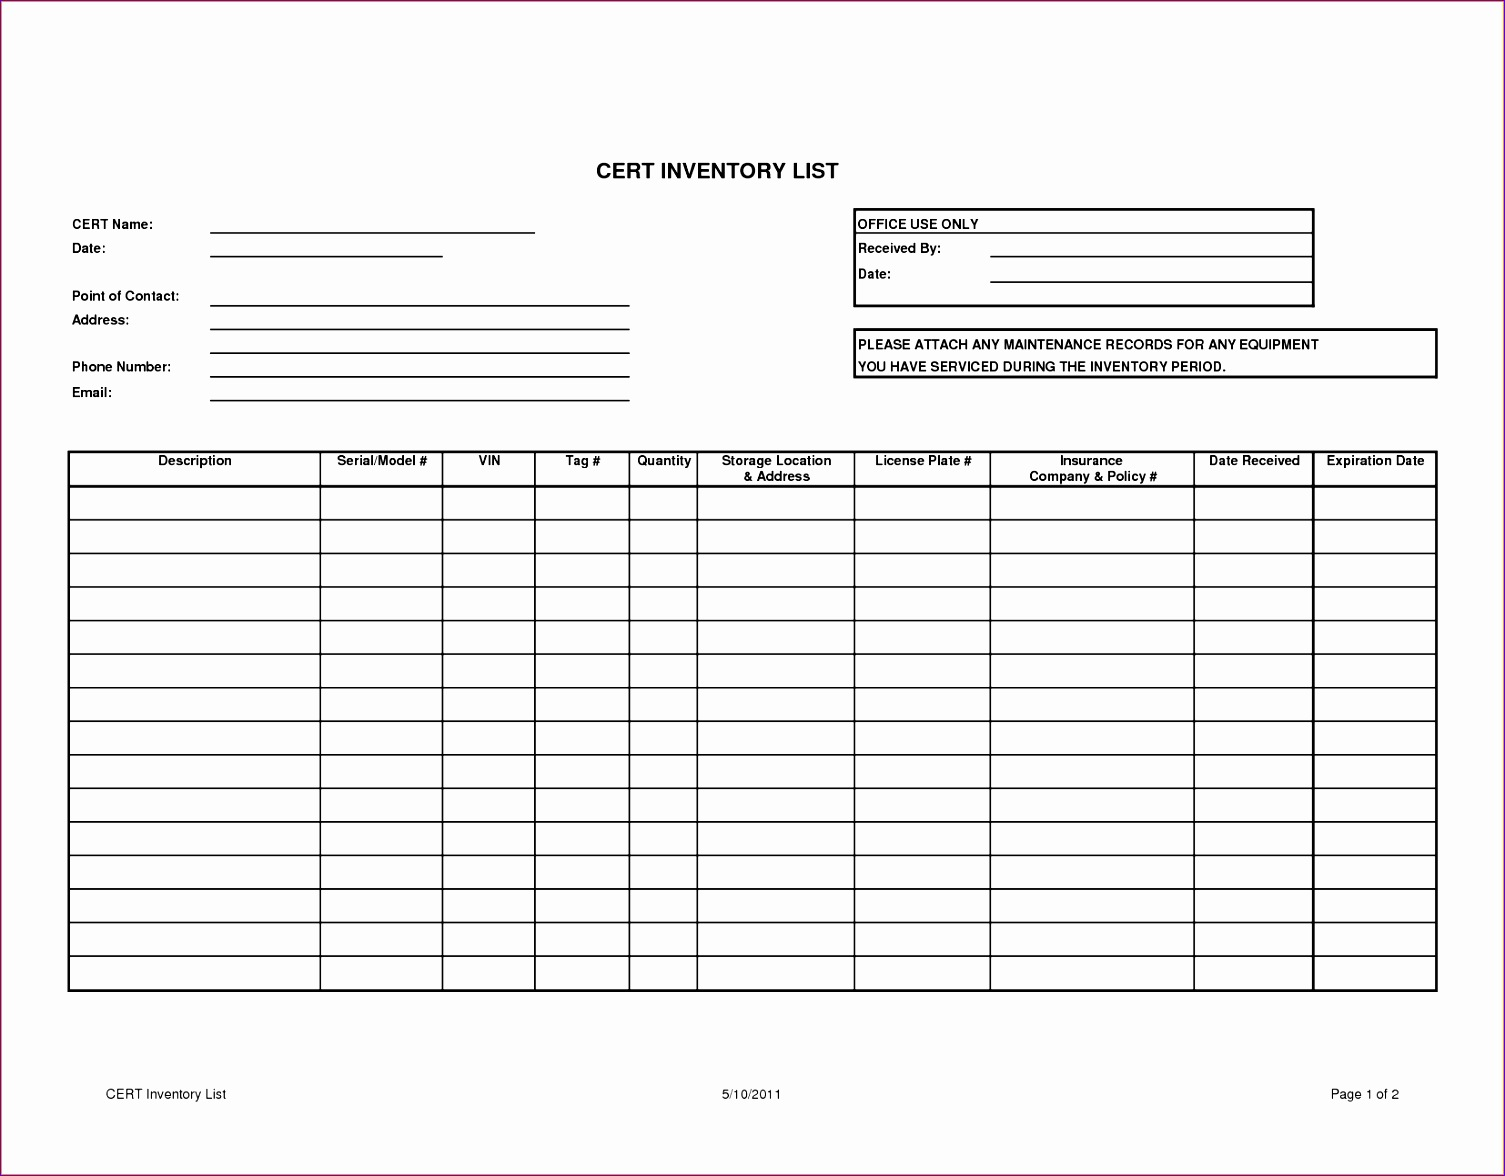 Cert Inventory List Template Freec Printable